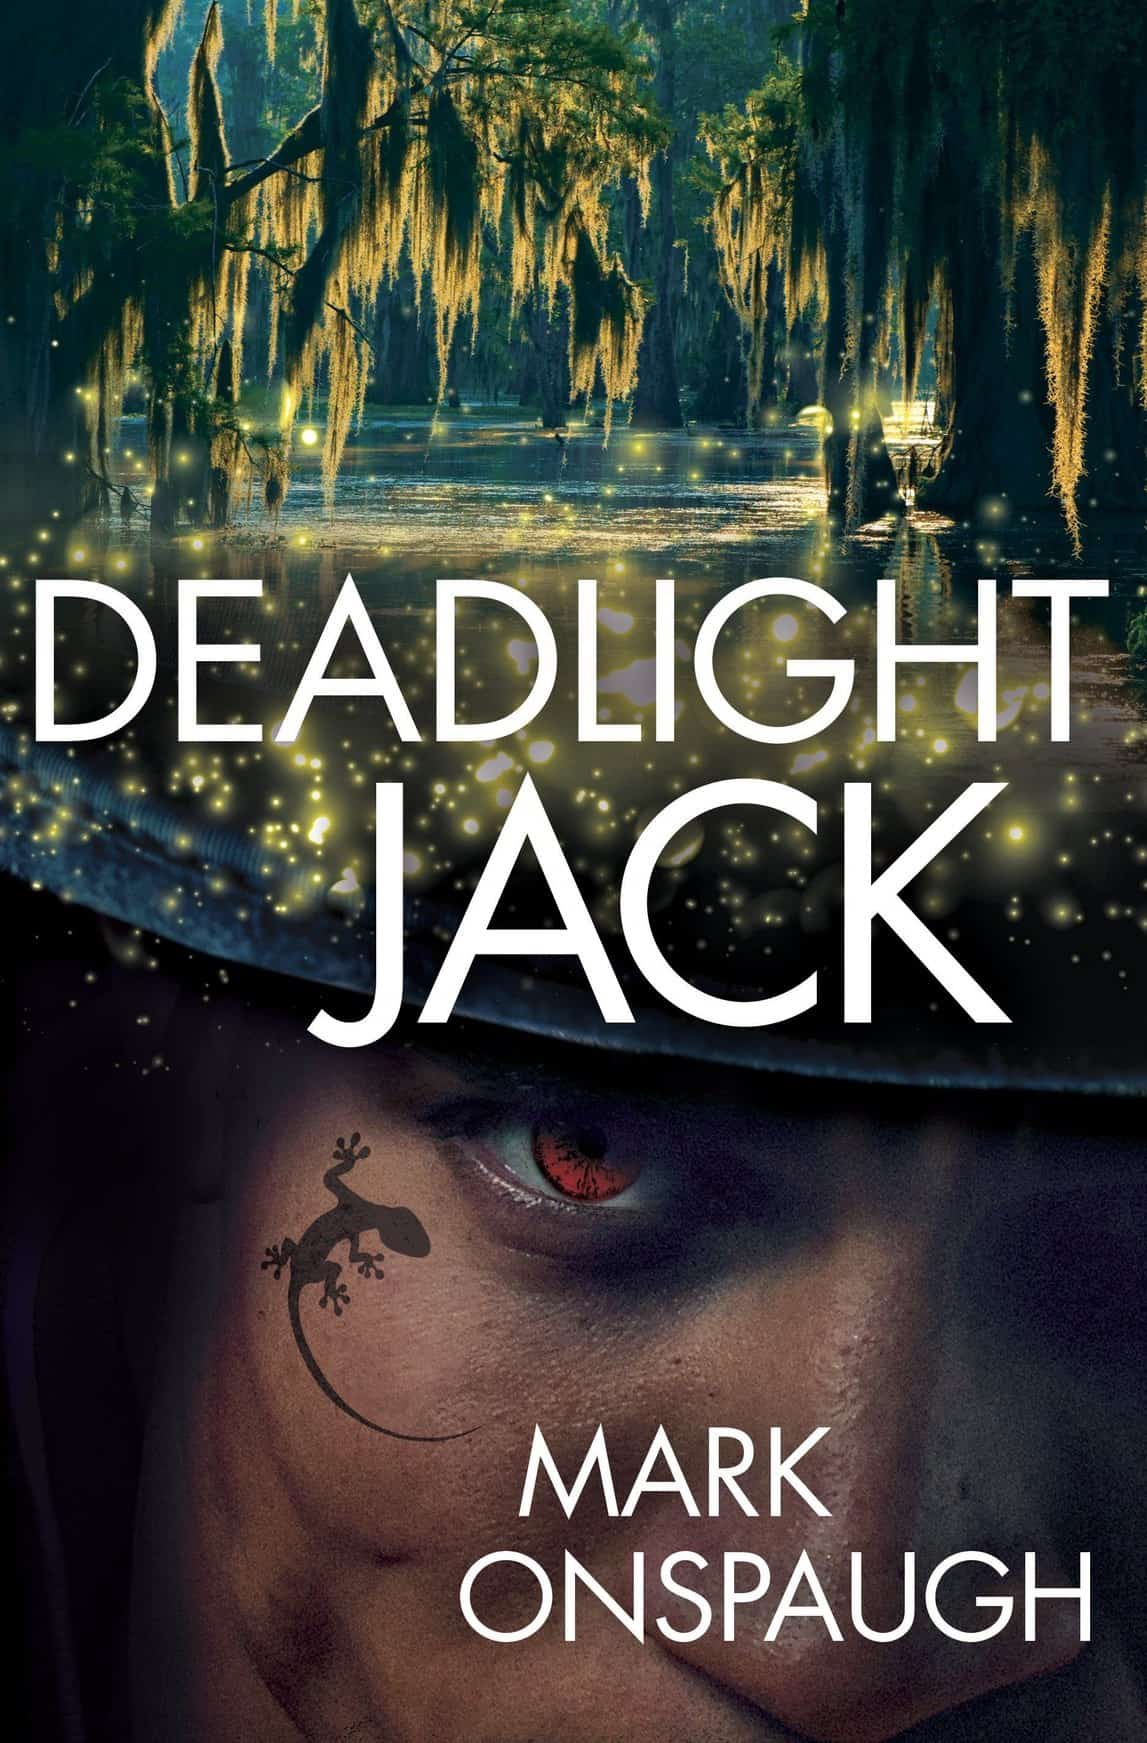 Deadlight Jack